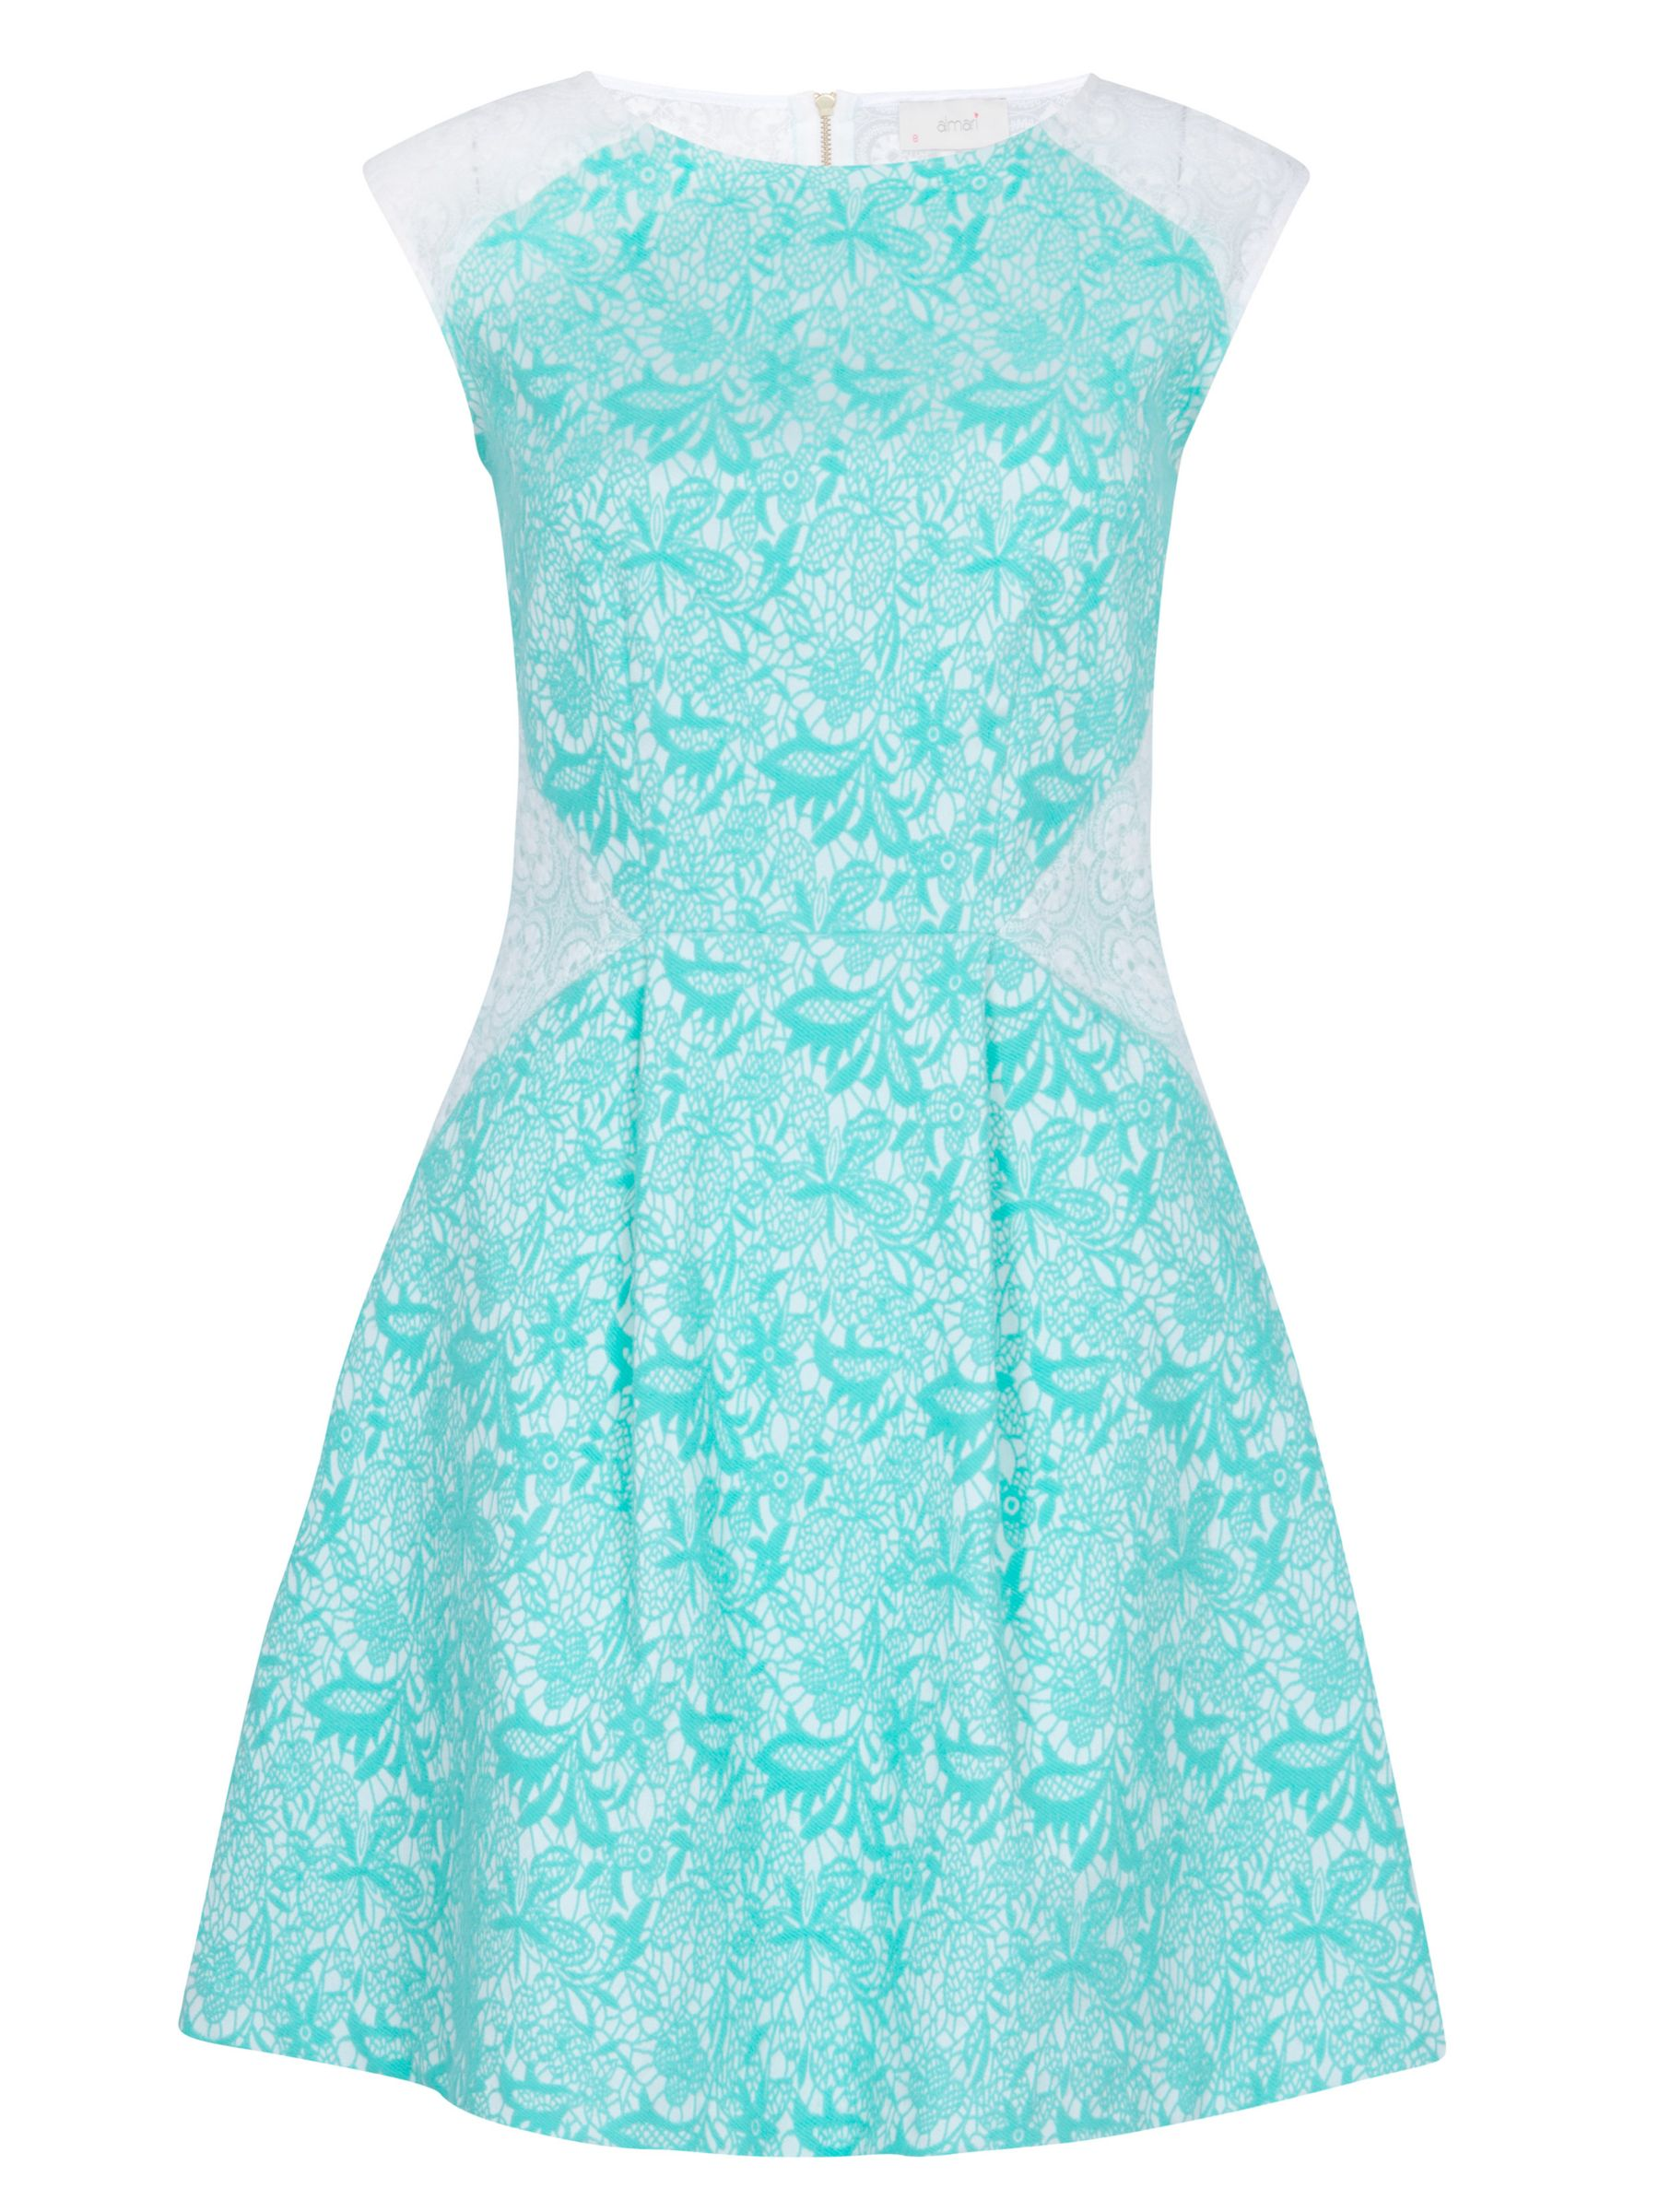 almari lace panel dress mint, almari, lace, panel, dress, mint, 12|14|10|8, clearance, womenswear offers, womens dresses offers, new years party offers, women, inactive womenswear, new reductions, womens dresses, buy now save for spring, special offers, 1735763